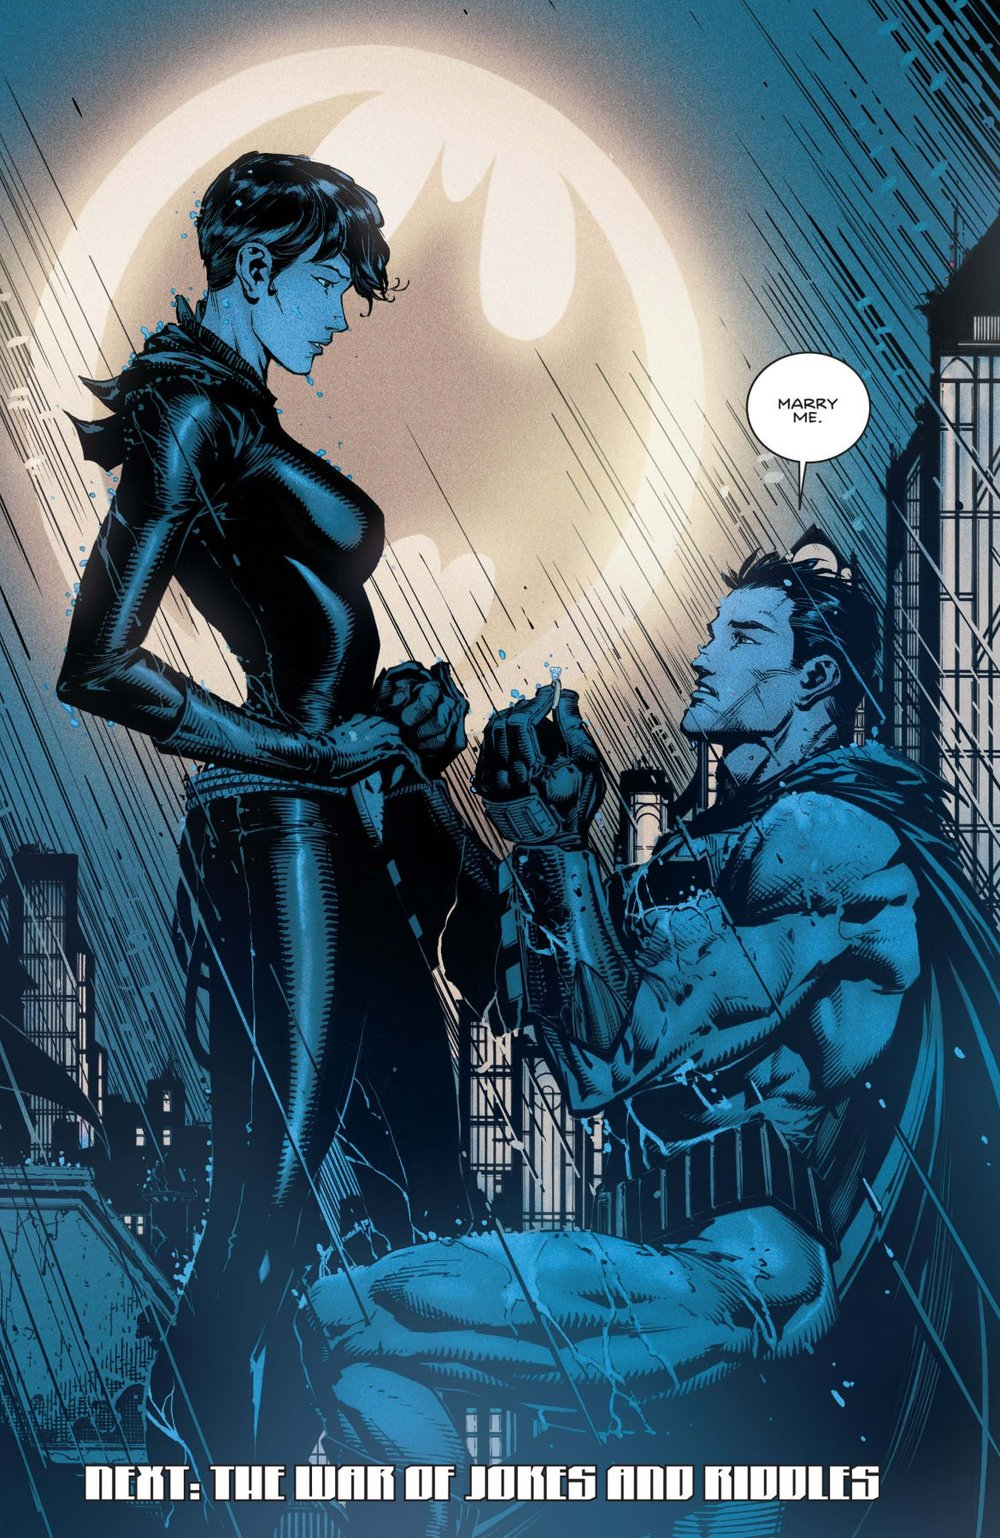 Bruce's proposal in  Batman #24  was followed by a confession that he felt unworthy because he'd nearly taken a life.